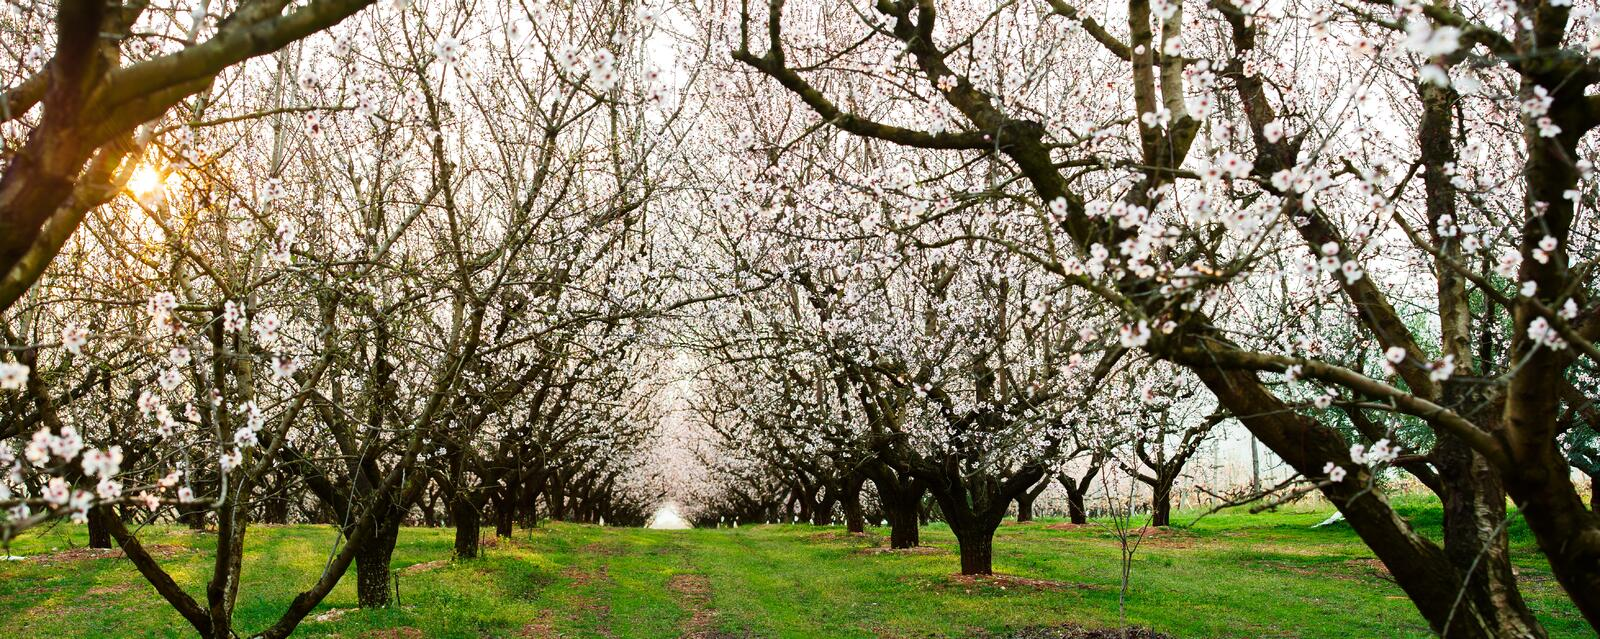 Almond Field At Sunset Royalty Free Stock Image